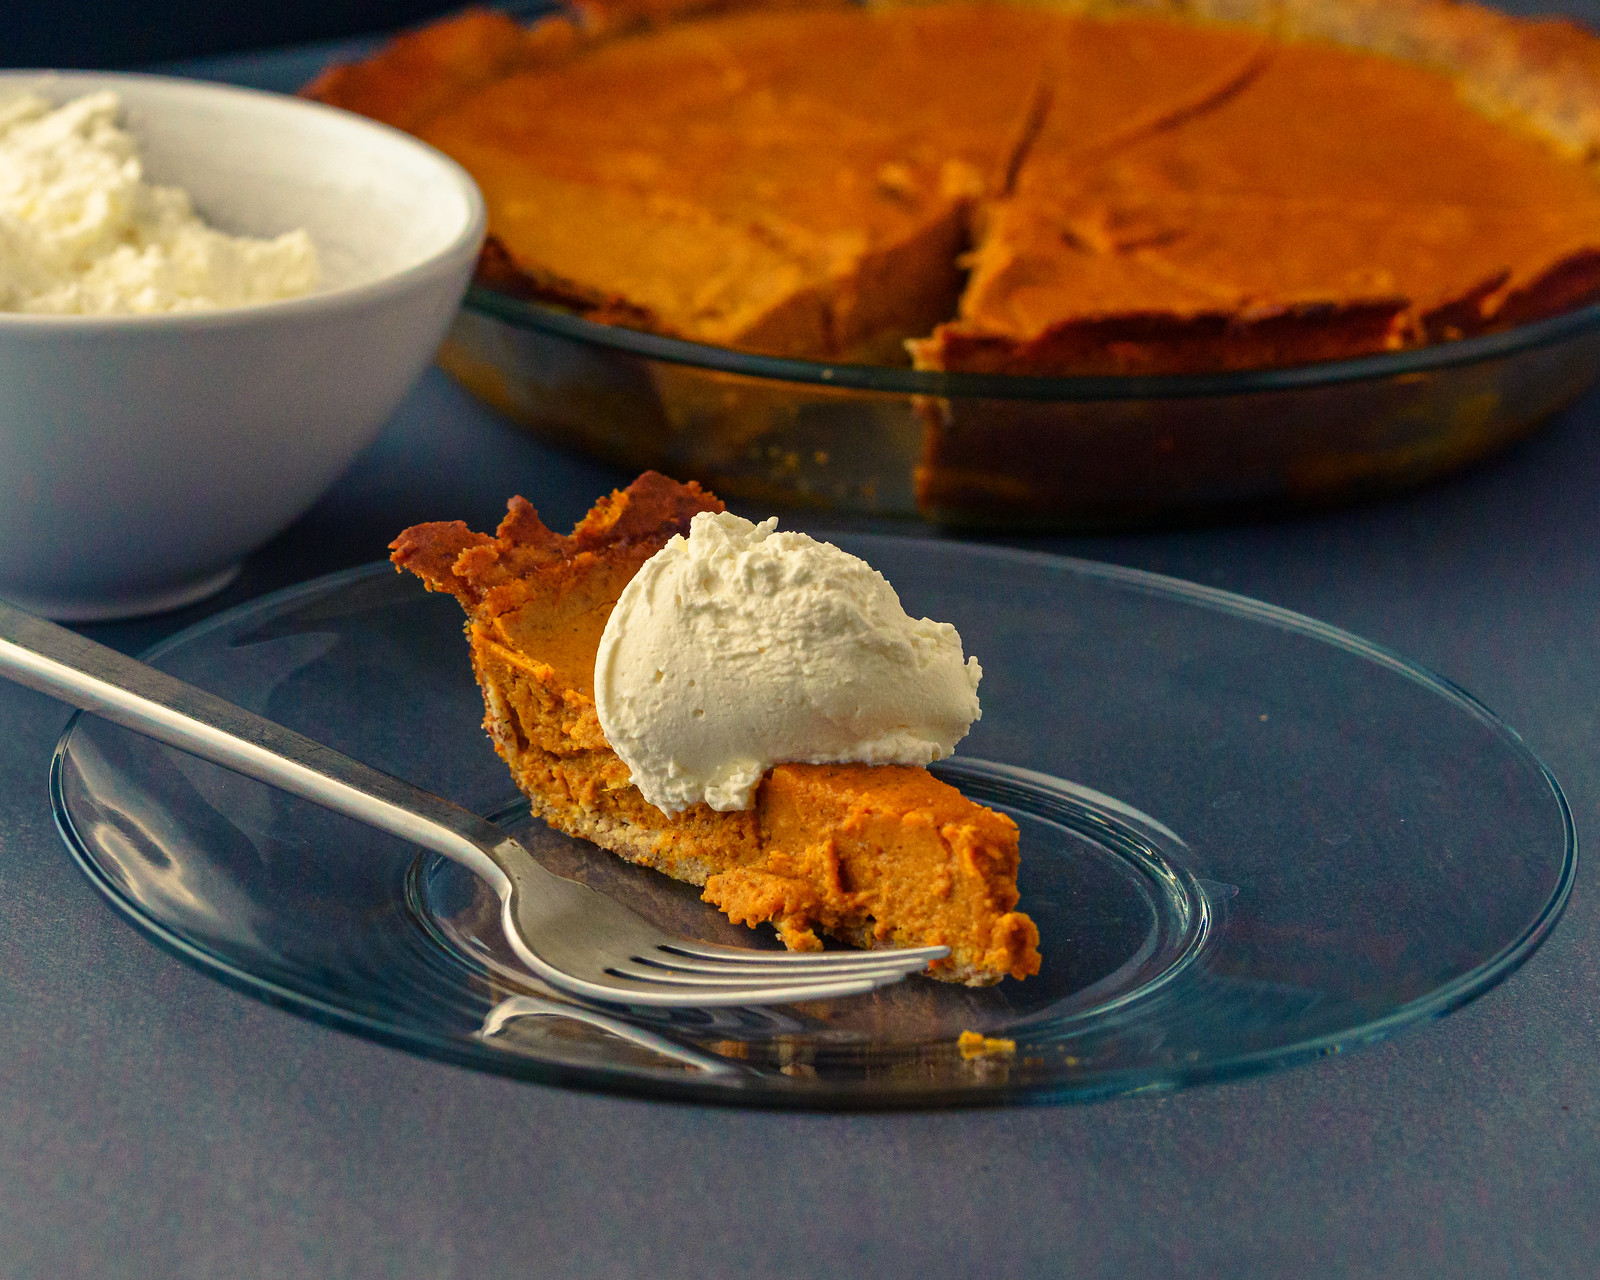 Recipe: Low Carbohydrate, Healthy Fat Pumpkin Pie